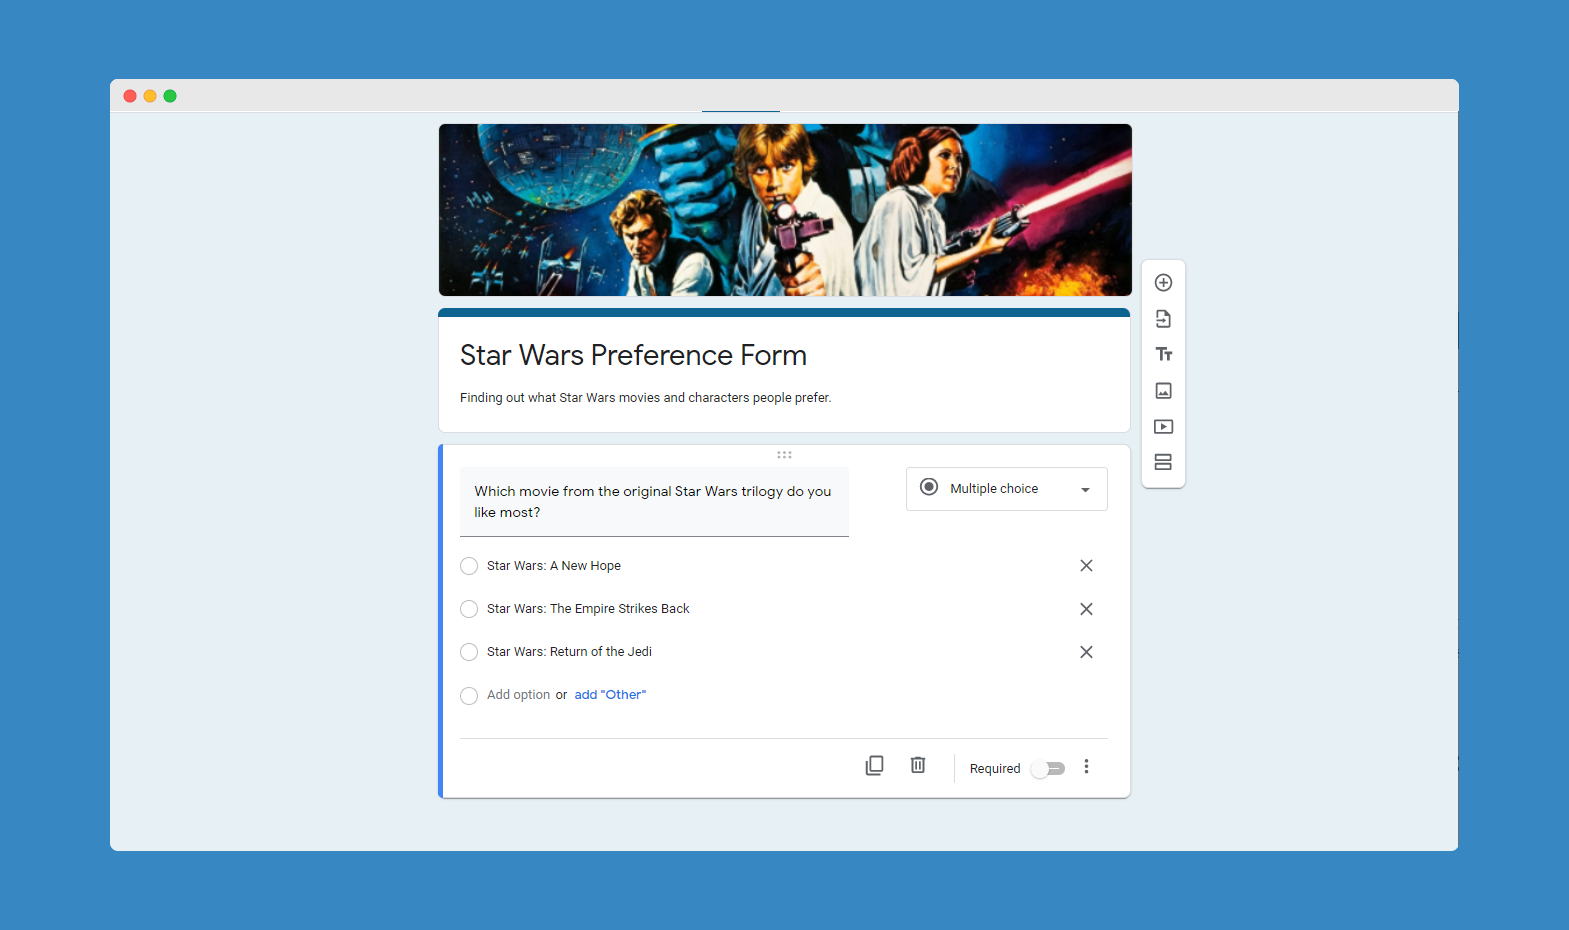 The next step of creating a Google Form